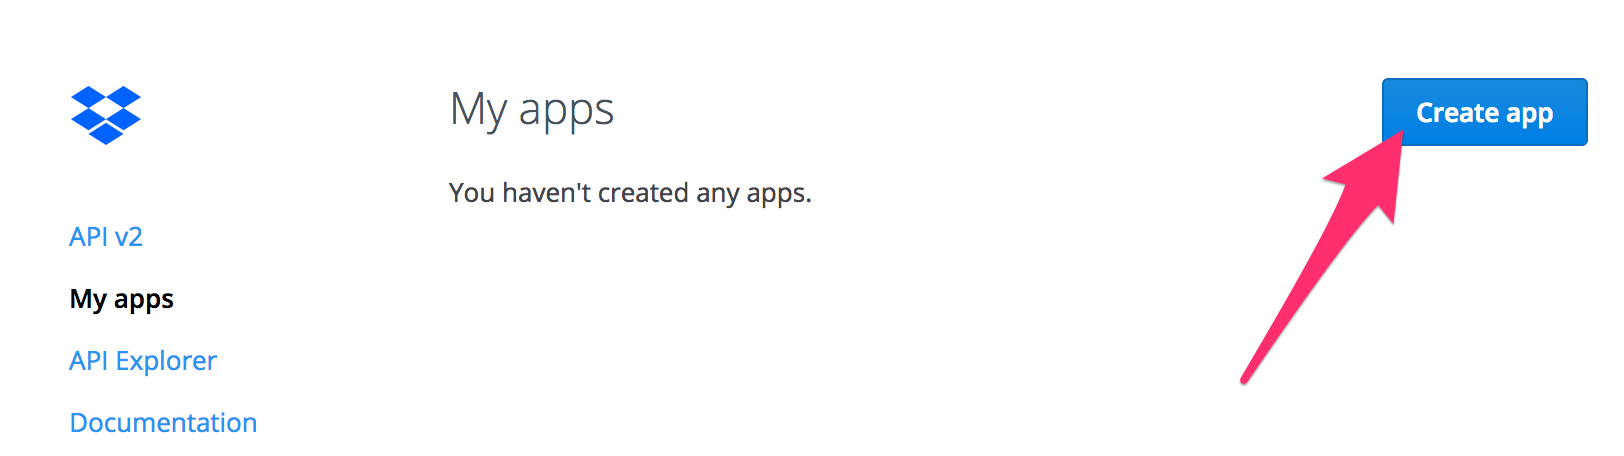 How to create App Key & Access Token for Your Dropbox